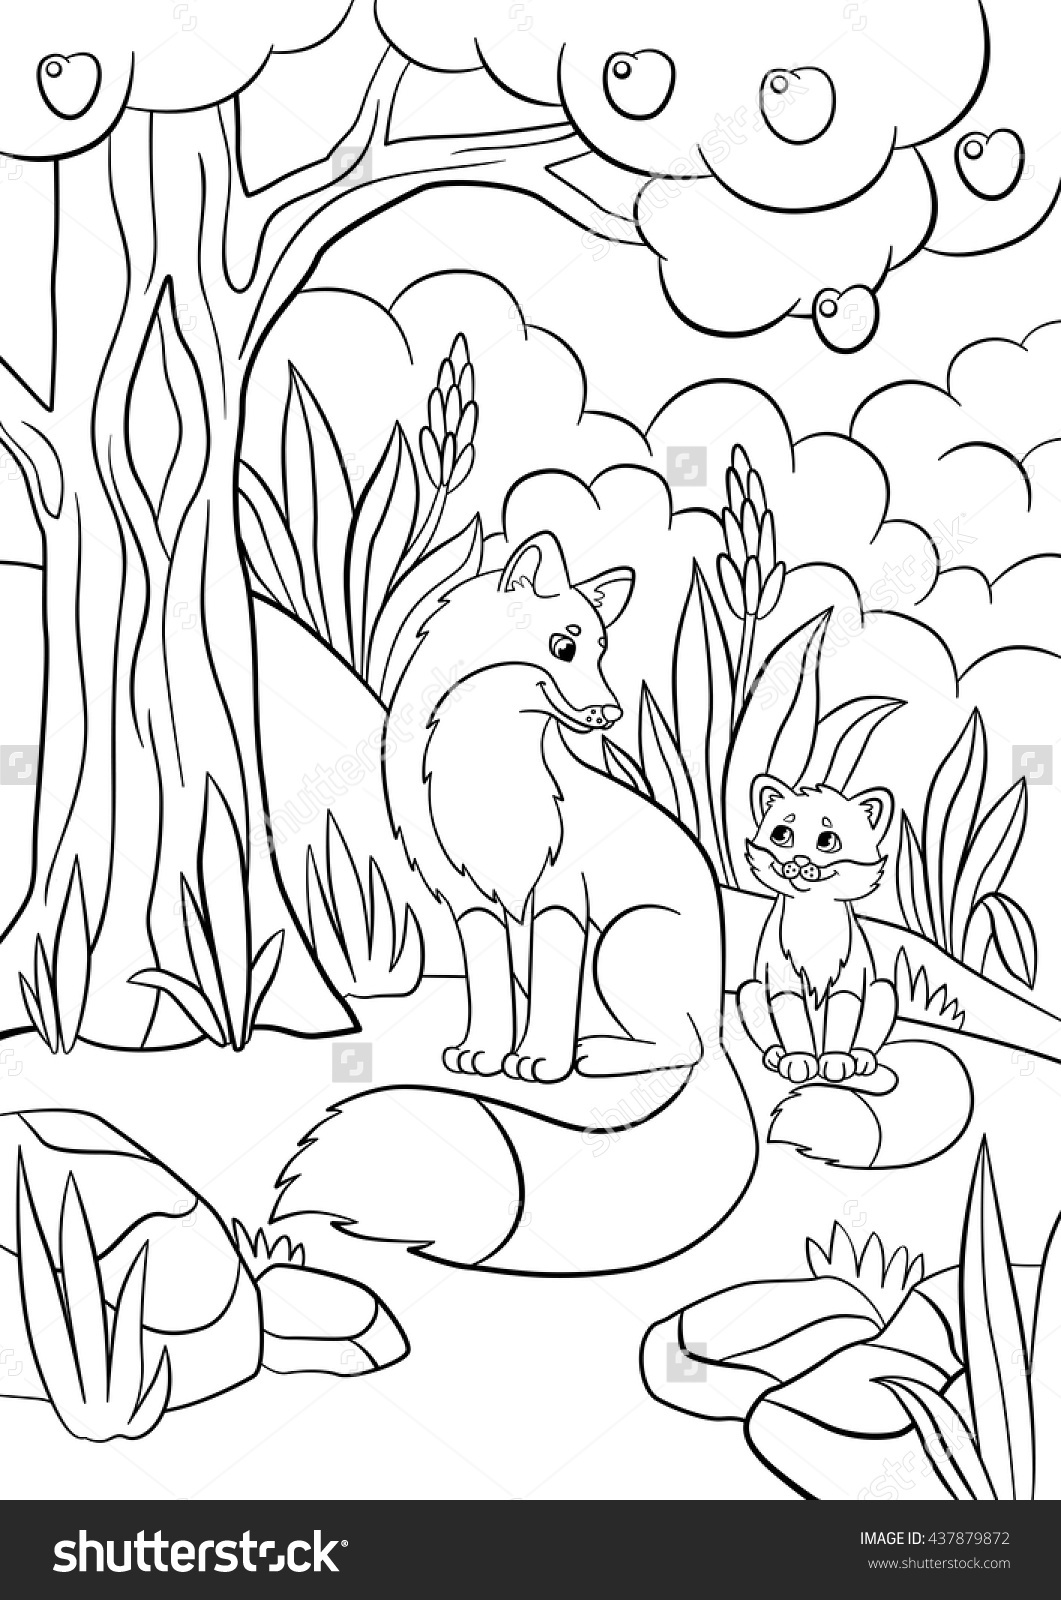 Baby Fox Coloring Pages At Getcolorings